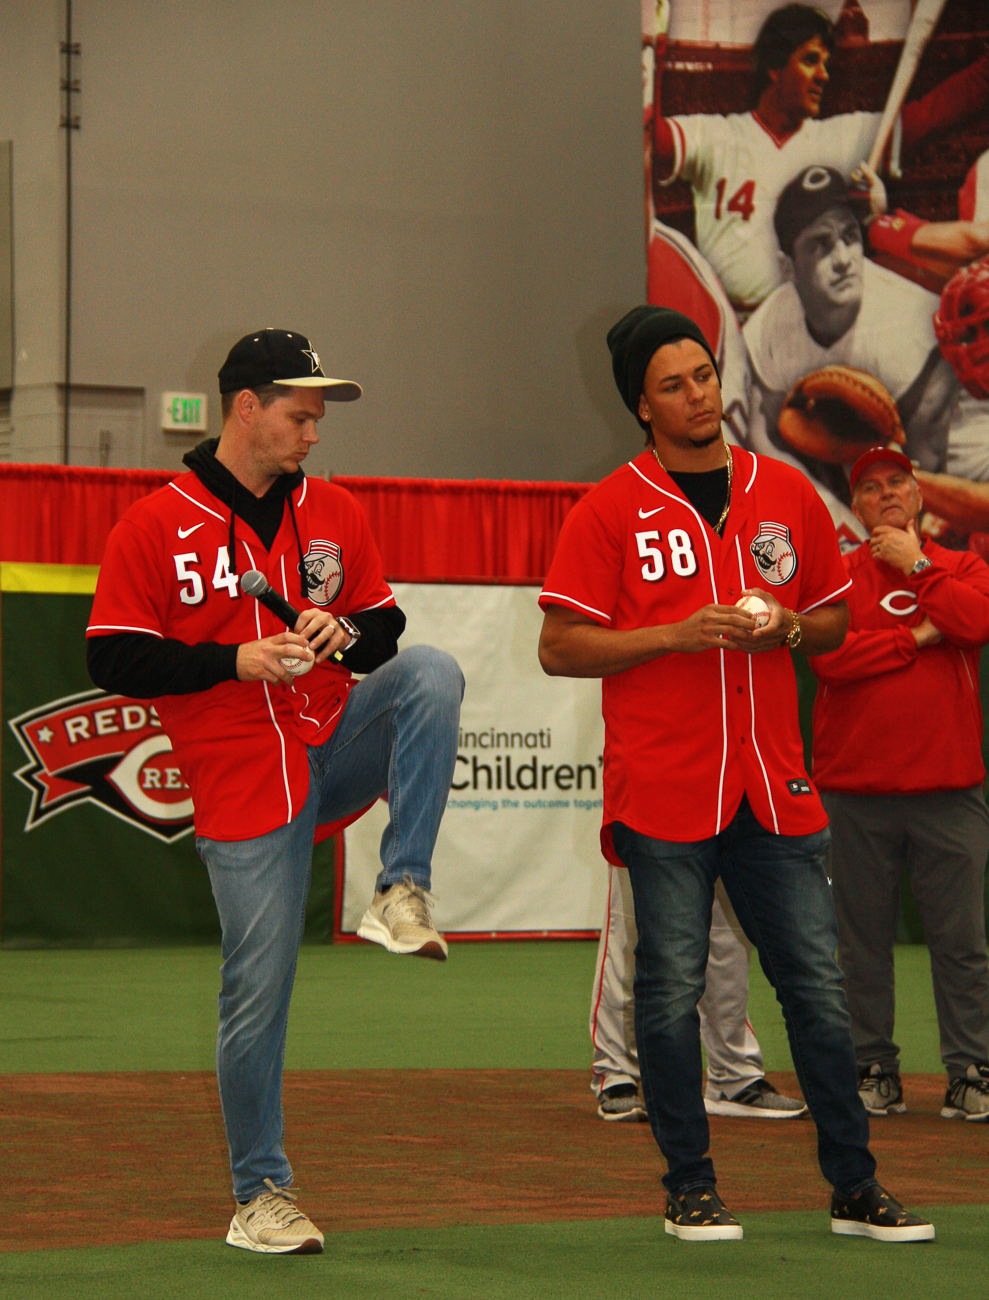 Sonny Gray, pitcher #54, and Luis Castillo, pitcher #58